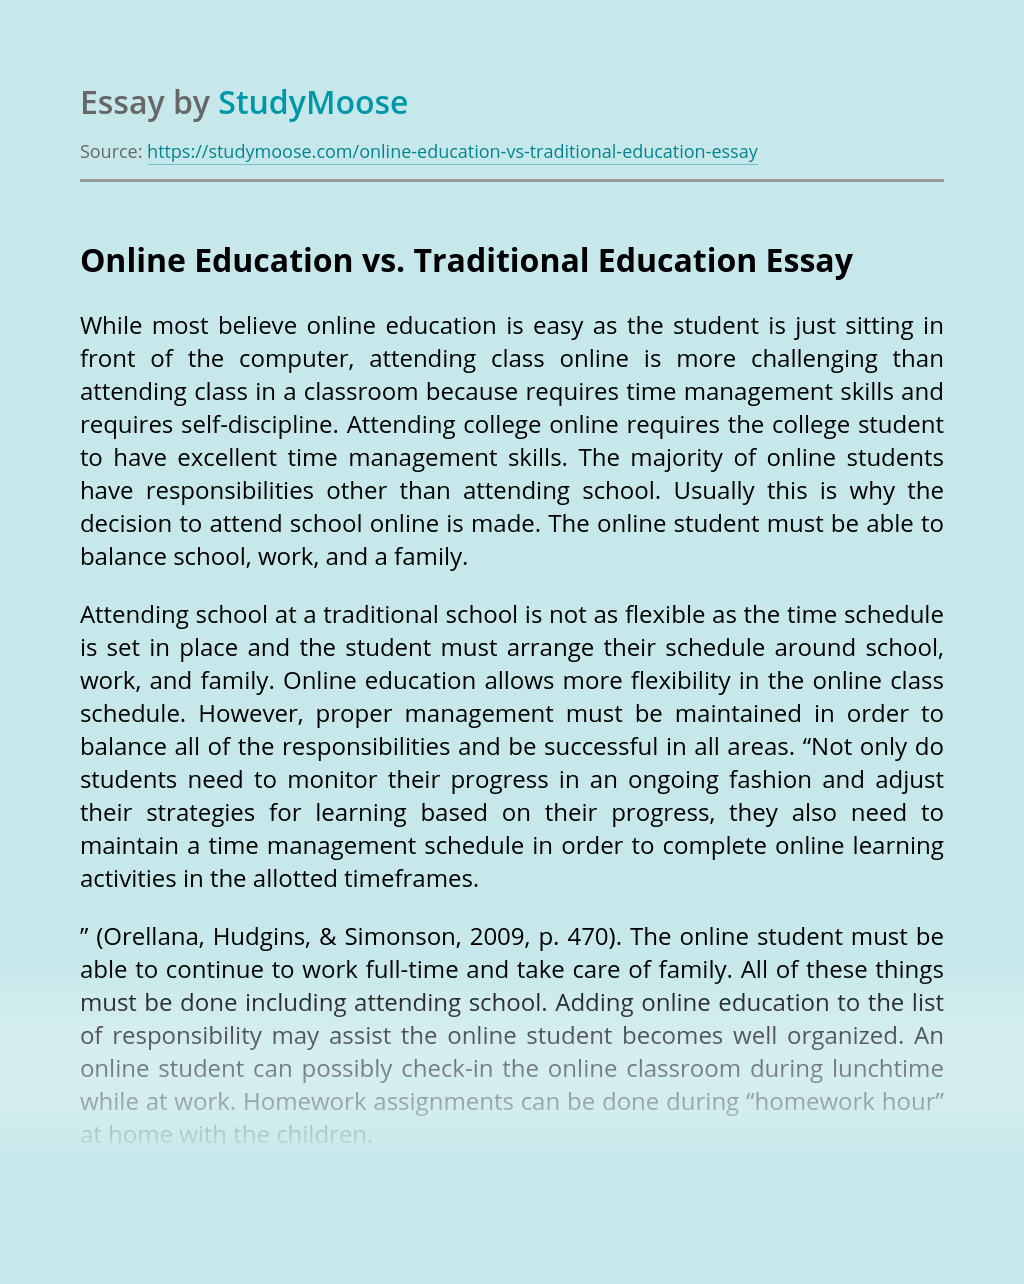 Online Education vs. Traditional Education